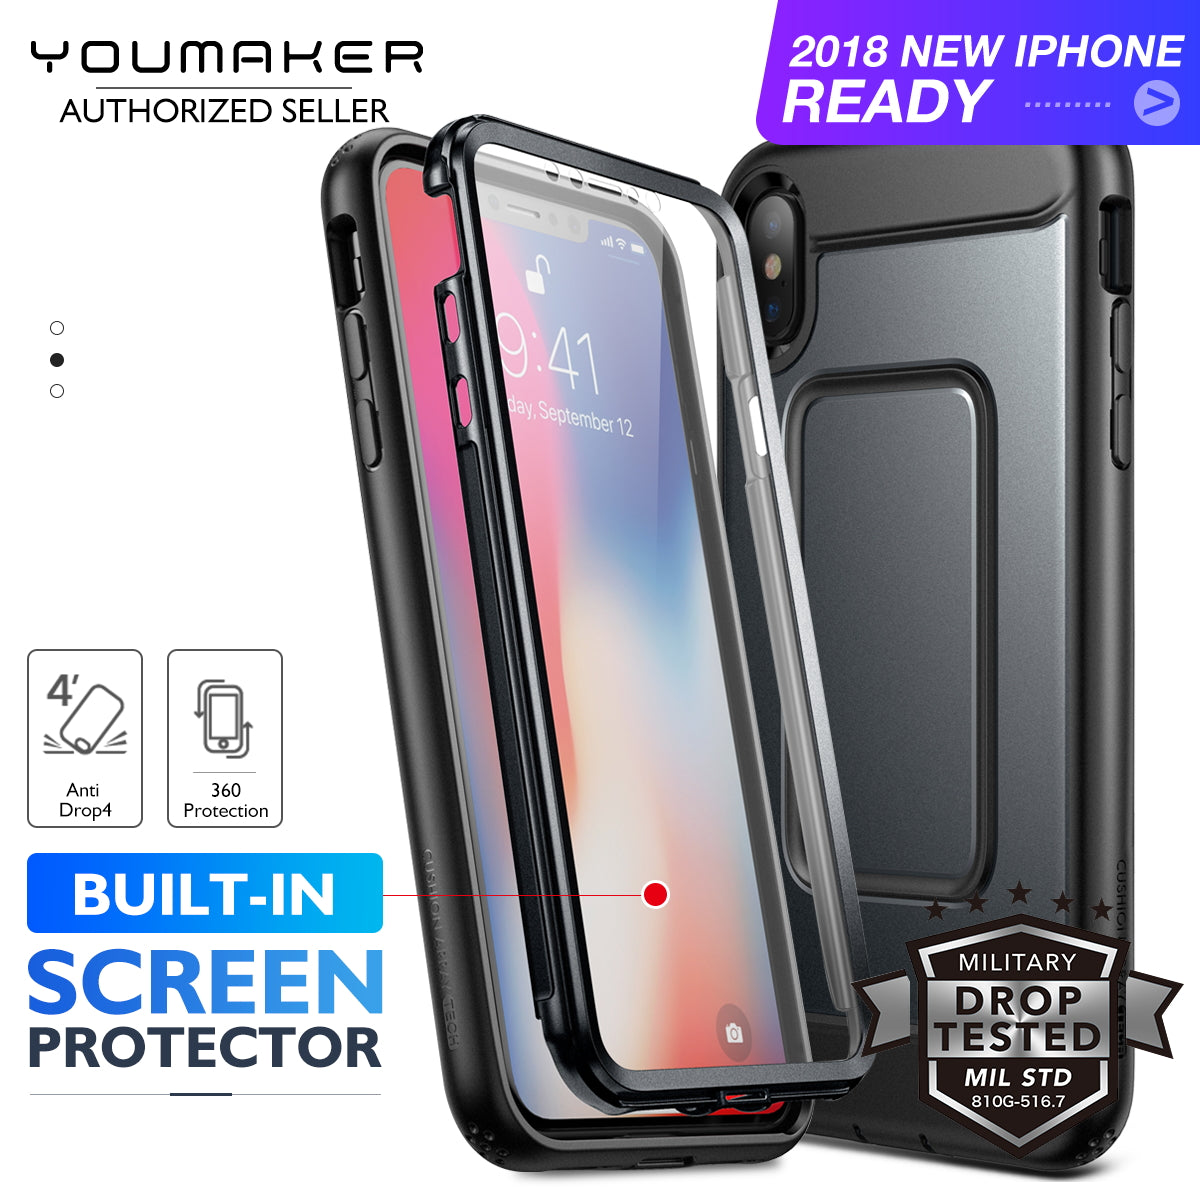 YOUMAKER iPhone XR Heavy Duty Shockproof Full-body Case Cover